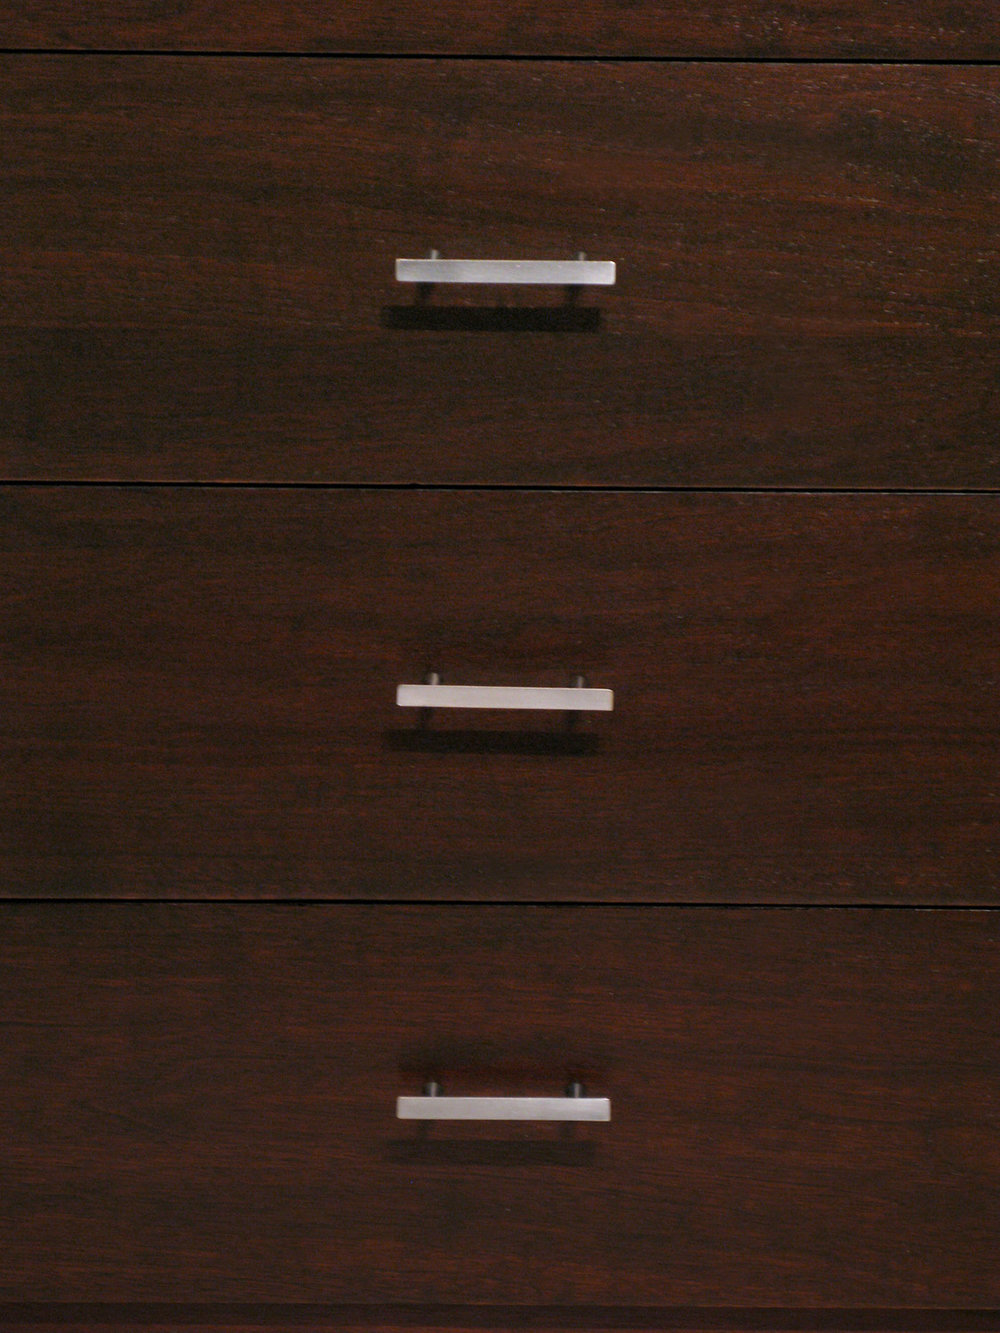 McCobb 55 walnut+alum four drwr nightstands65 pulls detail hires.jpg